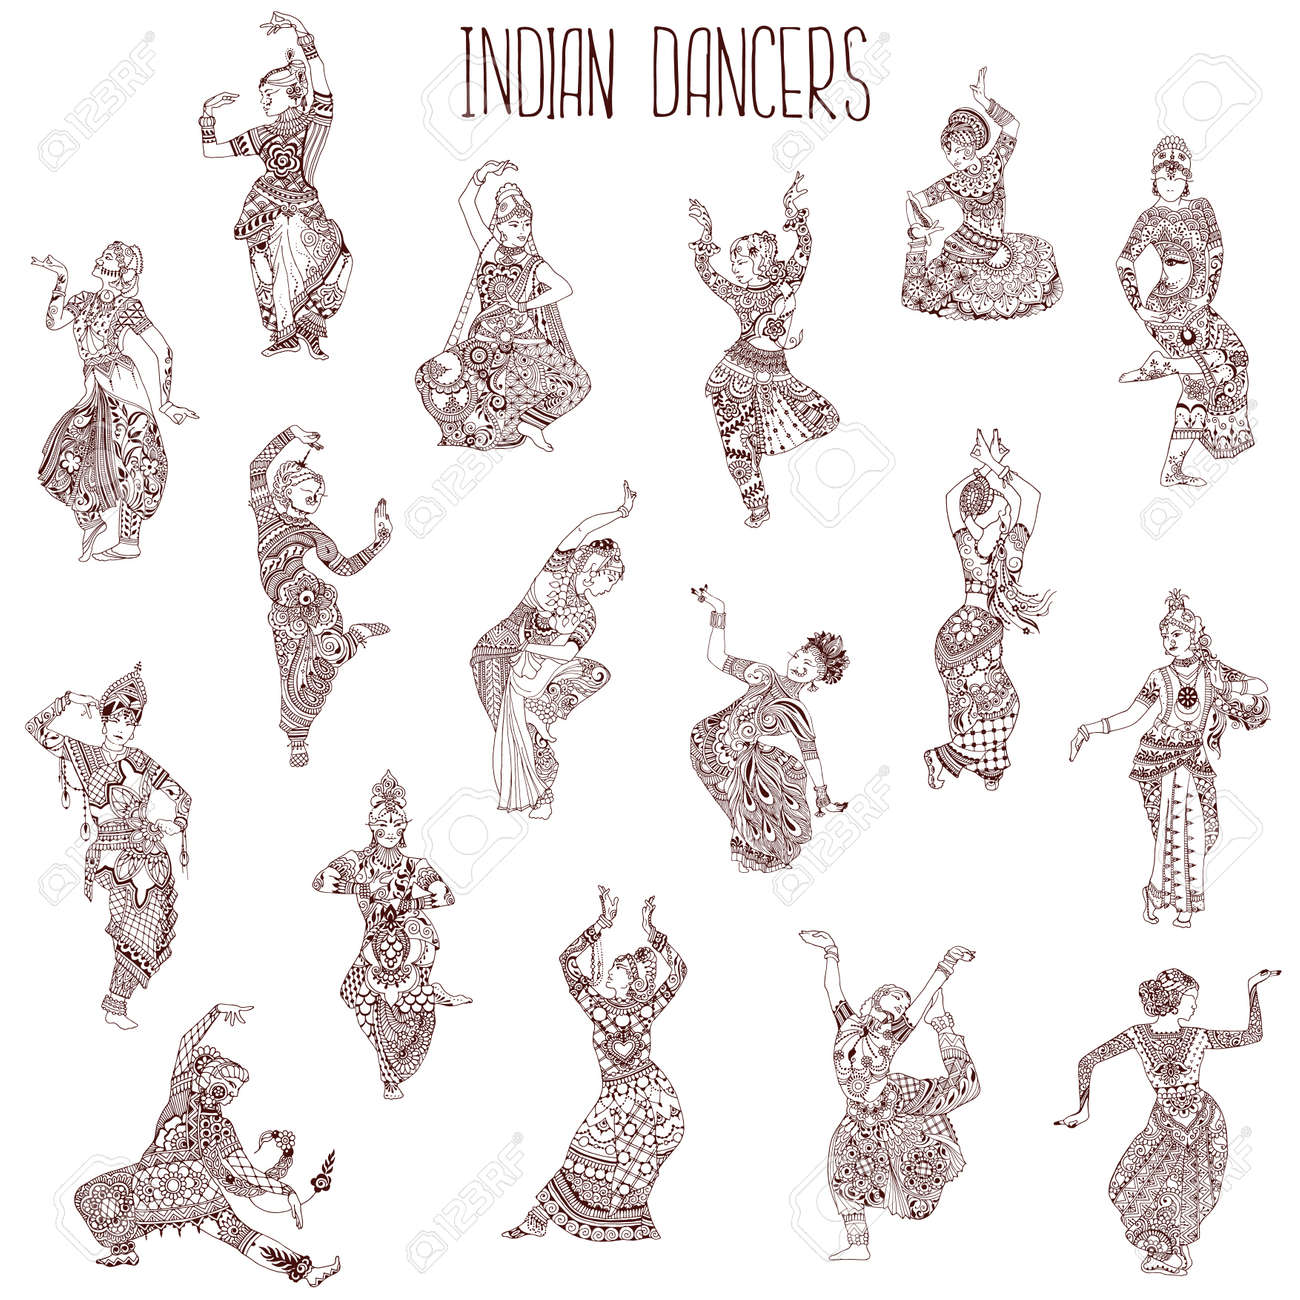 A Set Of Indian Dancers Girls In Different Oriental Dance Poses Royalty Free Cliparts Vectors And Stock Illustration Image 102005308